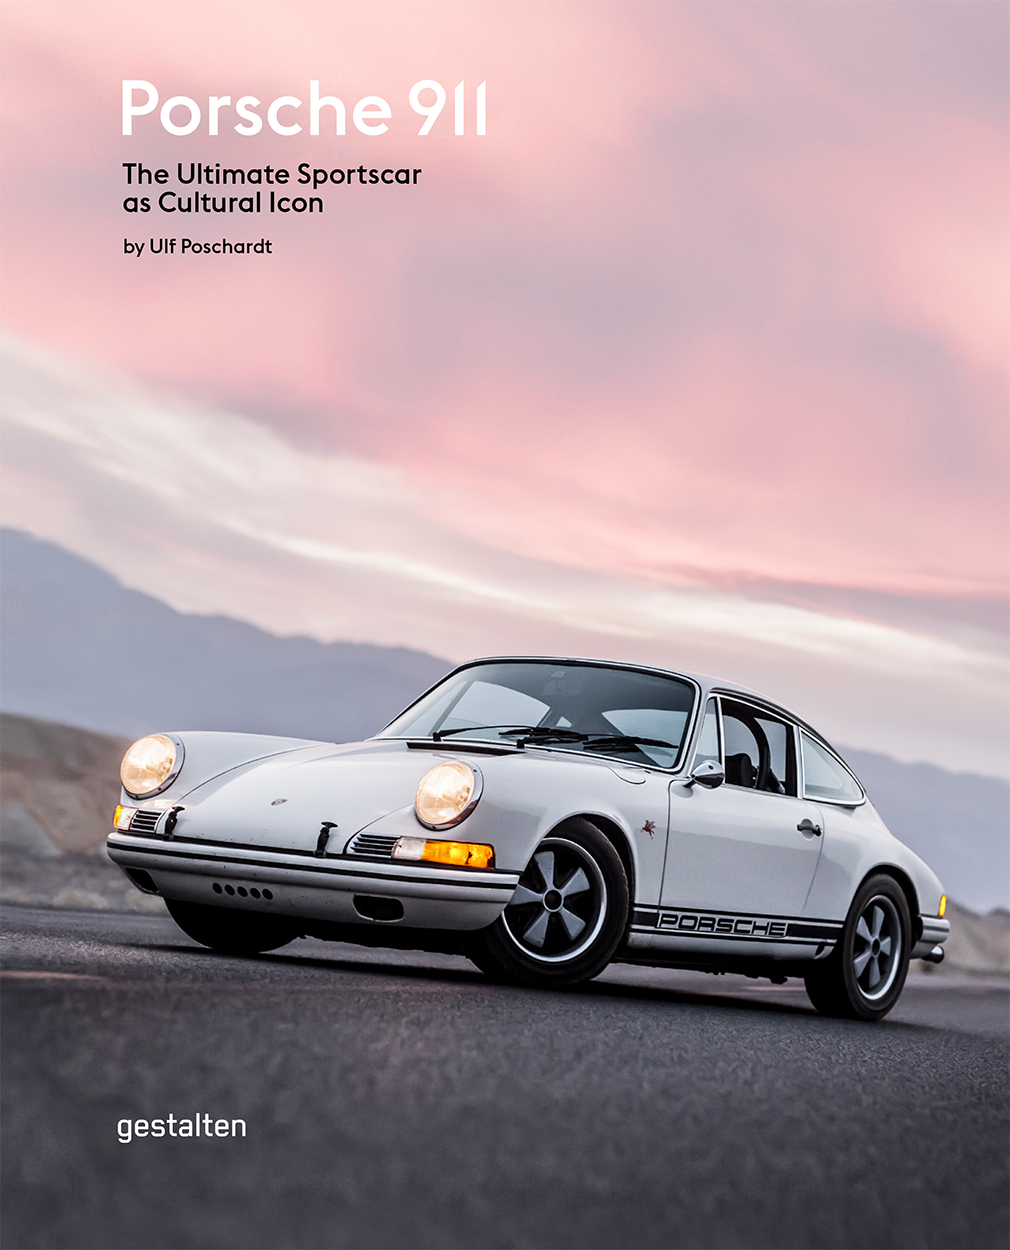 Book Review: Porsche 911: The Ultimate Sportscar As